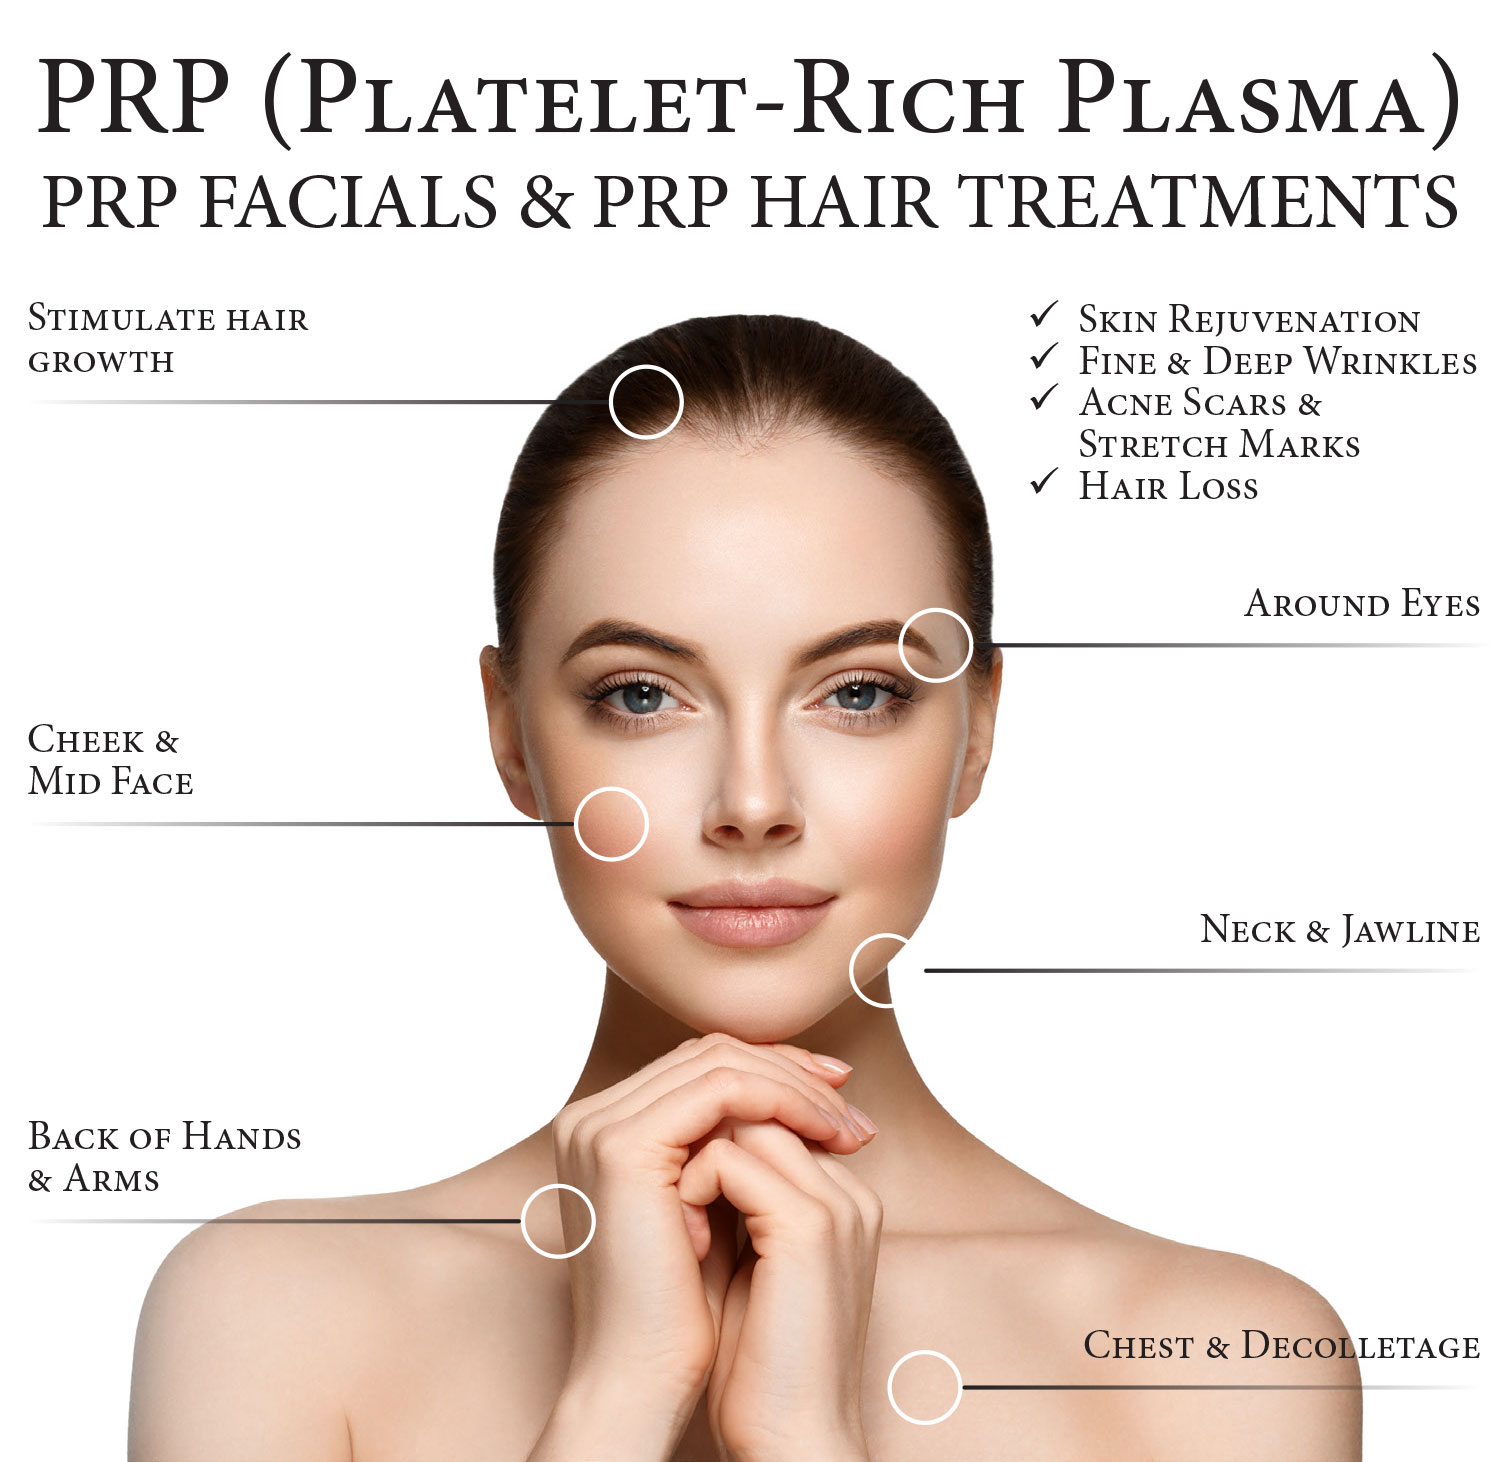 PRP-injections-the-regen-cliniq-scottsdale-arizona-dr-arnold-dr-shaw Platelet Rich Plasma (PRP)